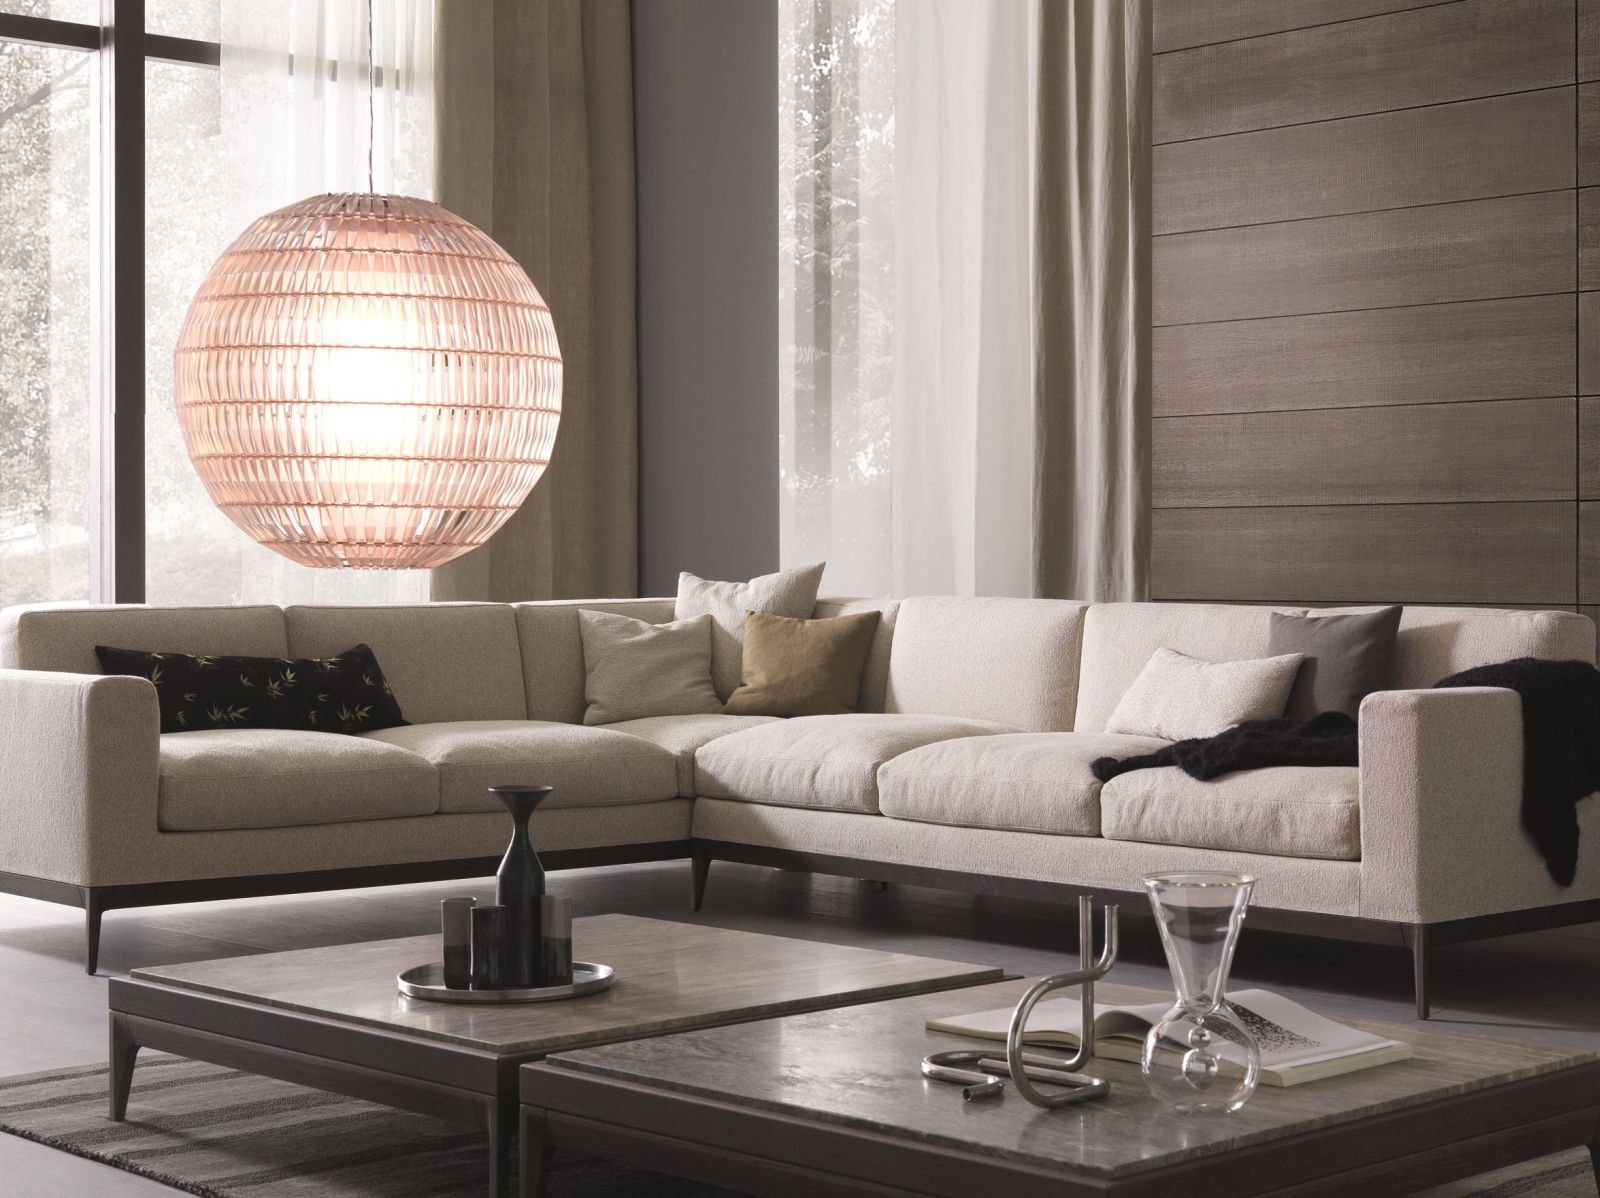 big soft comfy sofas turkish sofa cover add space where you need it the most with l-shaped